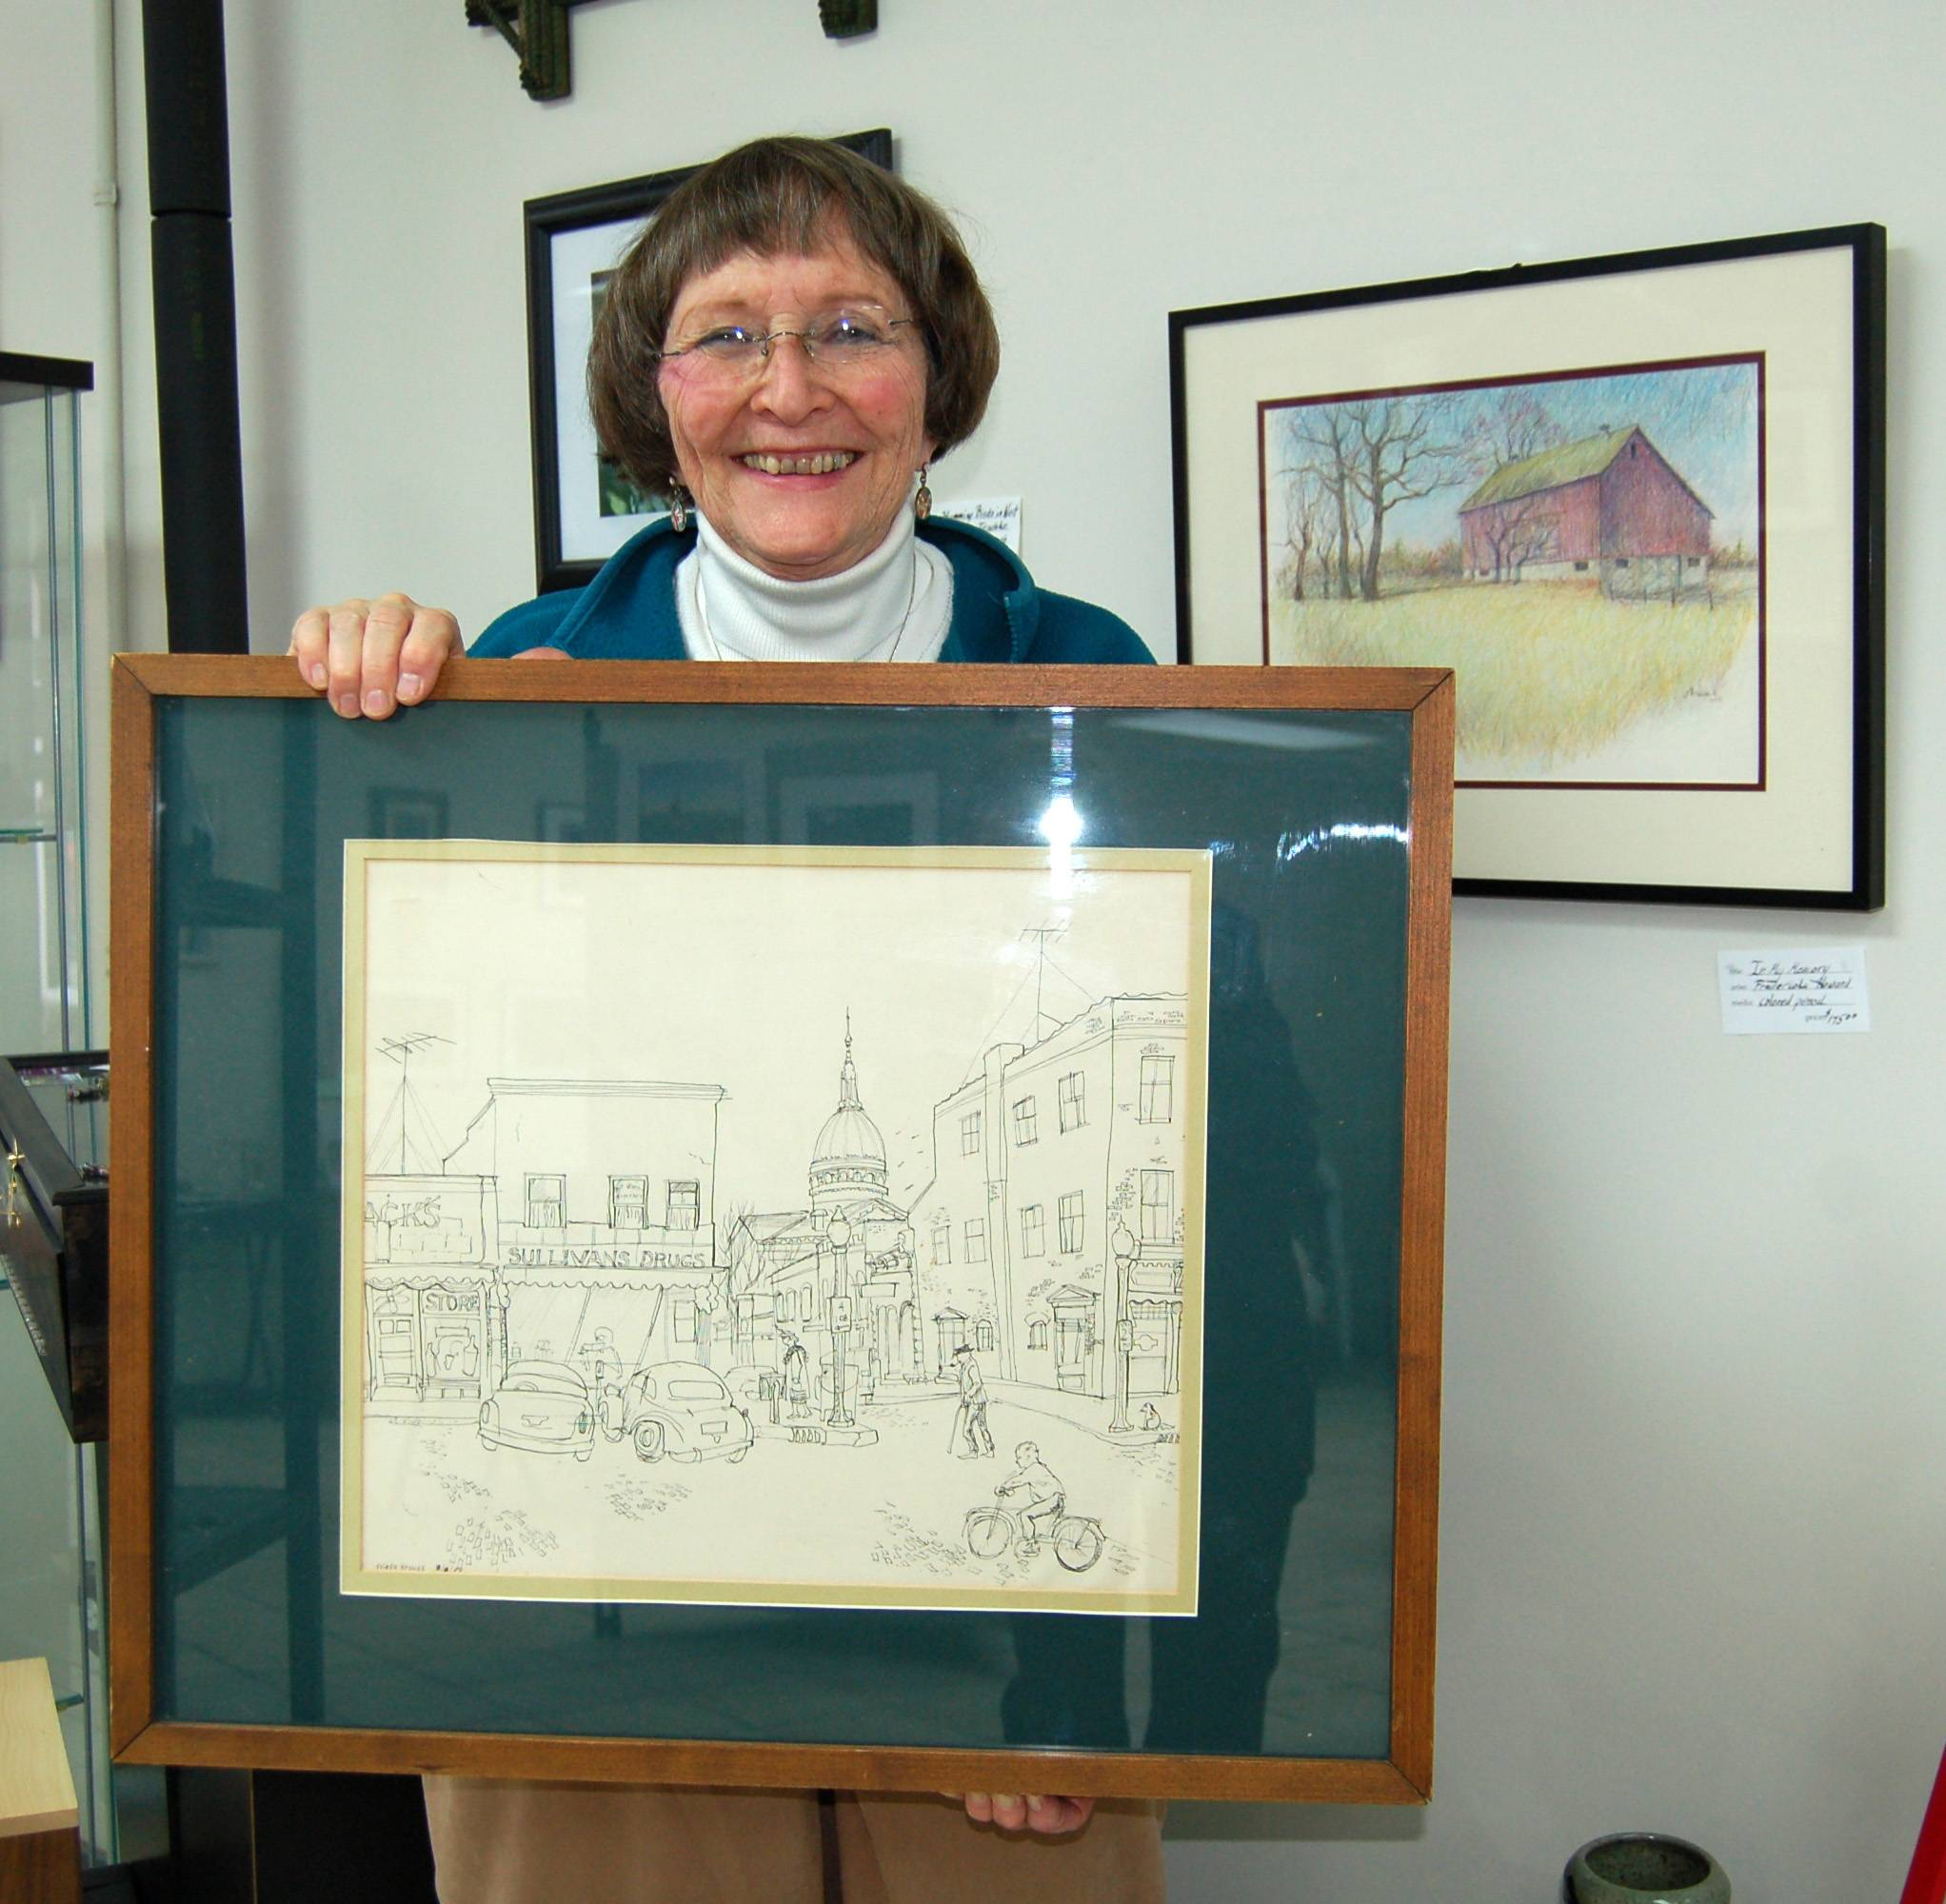 "Fredericka Krauss Howard is holding an ink sketch titled ""Carlinville Square,"" a piece from her original 1953 art portfolio from Blackburn College.  The image will be included in an exhibit by the college's Department of Visual Arts at Gallery 200 in February 2013.  Over her shoulder hangs a more recent colored pencil image by Howard titled ""In My Memory"" and is one of many local barns immortalized by the artist."